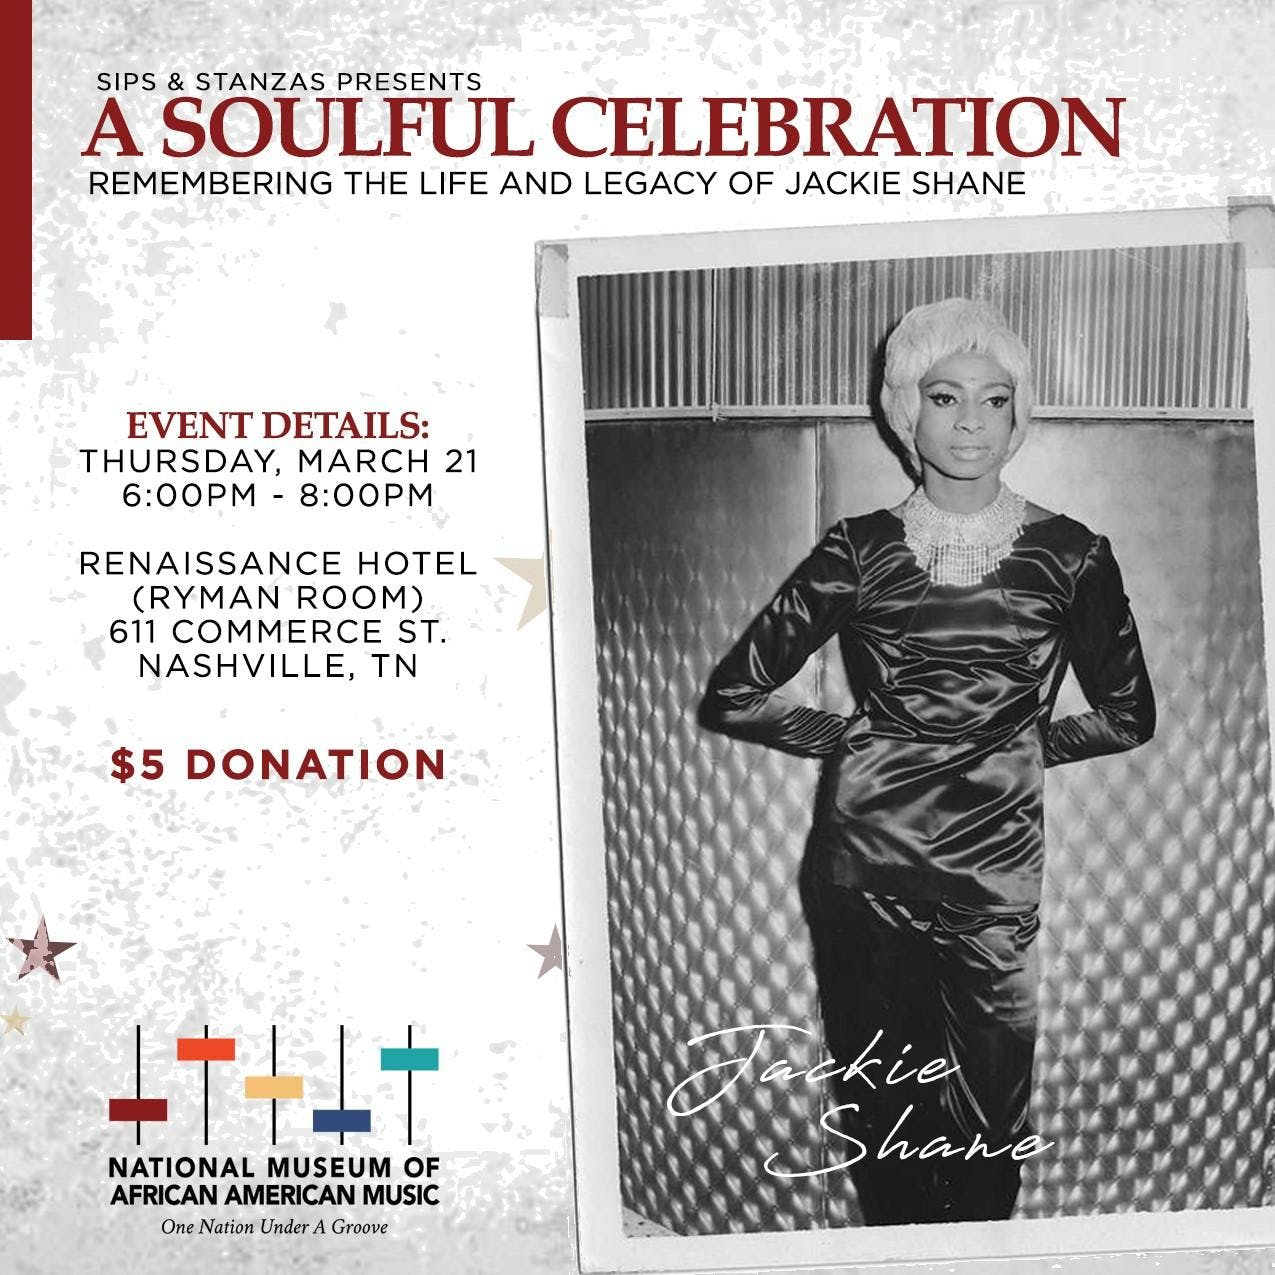 Sips & Stanzas Presents A Soulful Celebration: Remembering the Life & Legacy of Jackie Shane